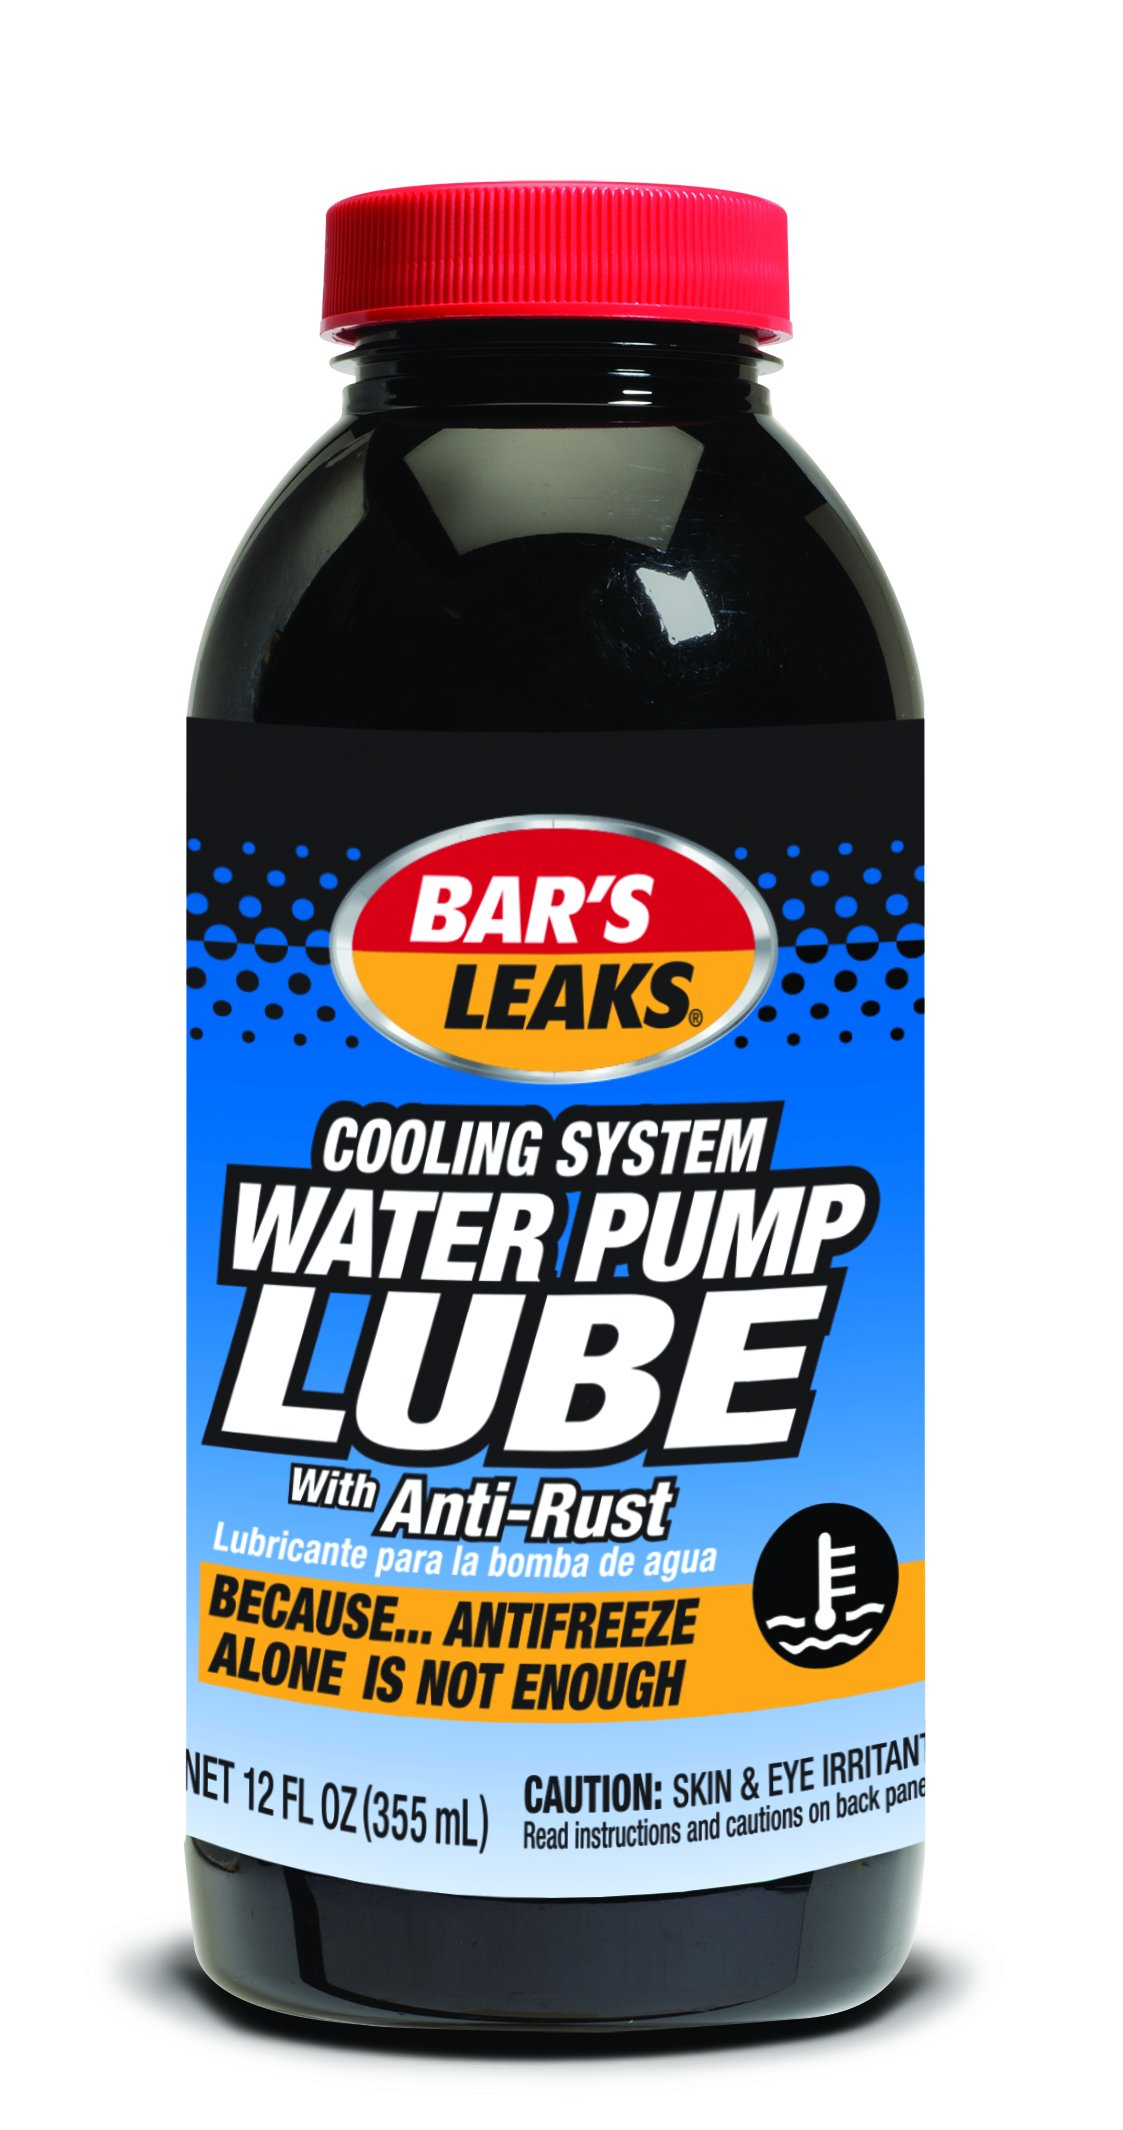 Bar's Leaks 1311-6PK Water Pump Lube with Anti-Rust - 12 oz., (Pack of 6)